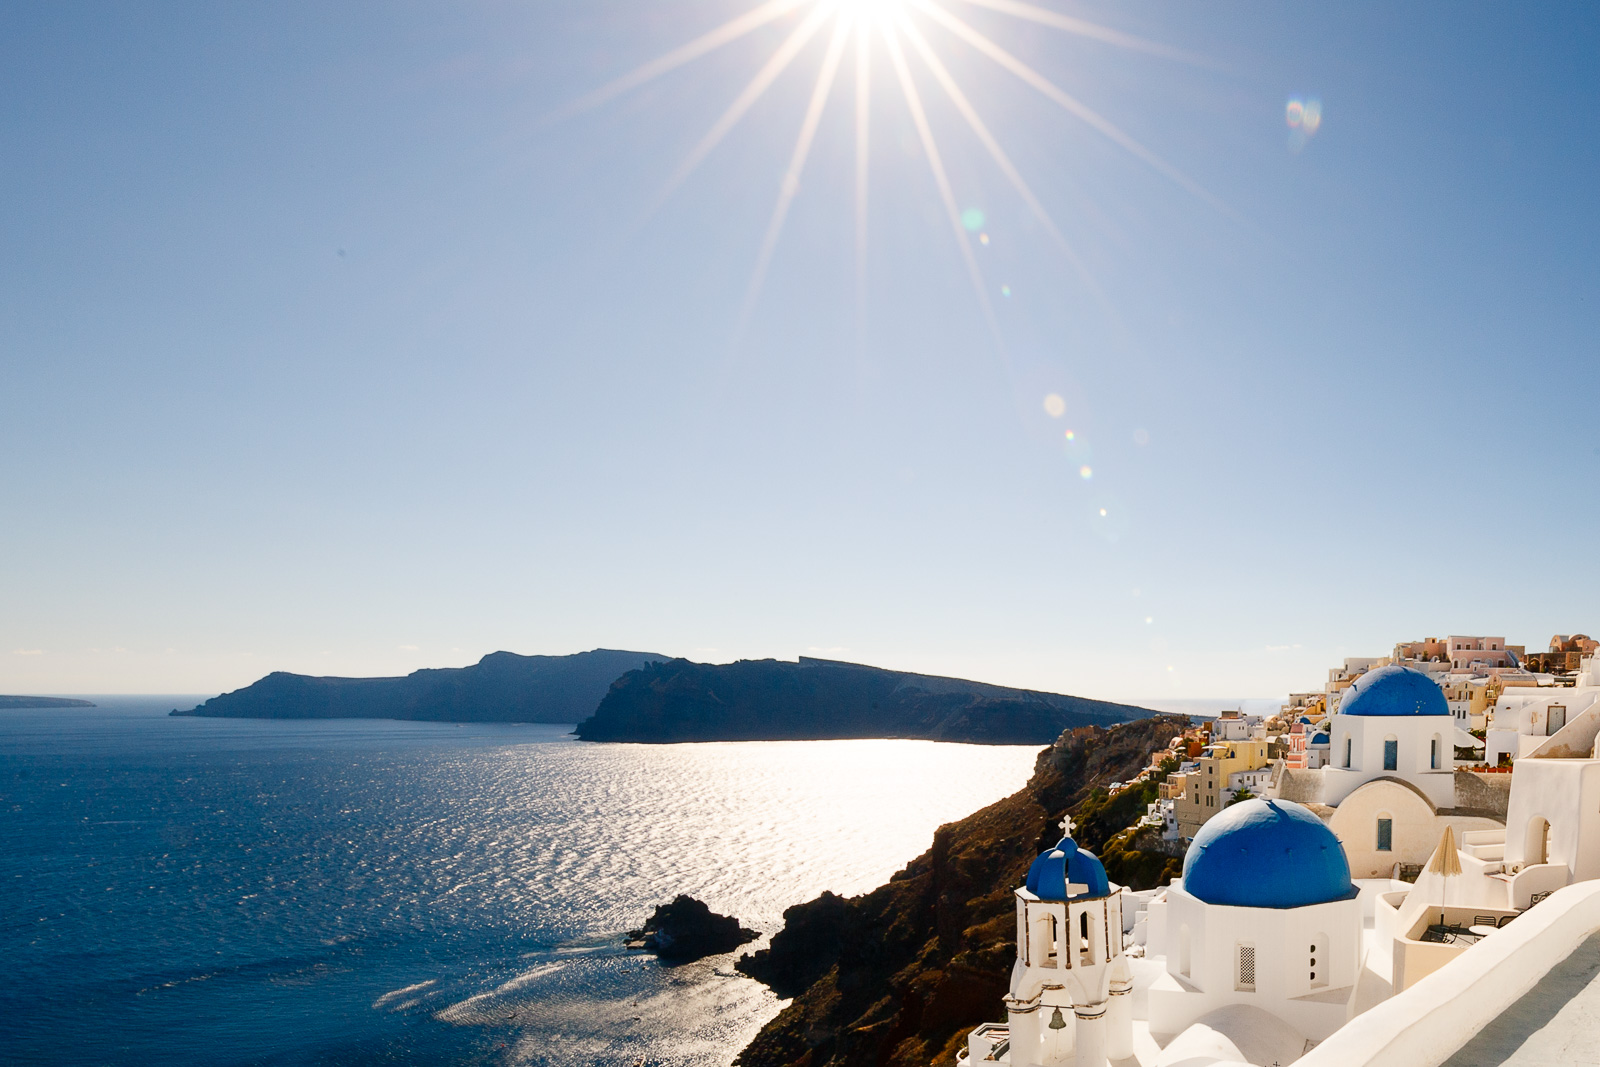 Photographing Greece